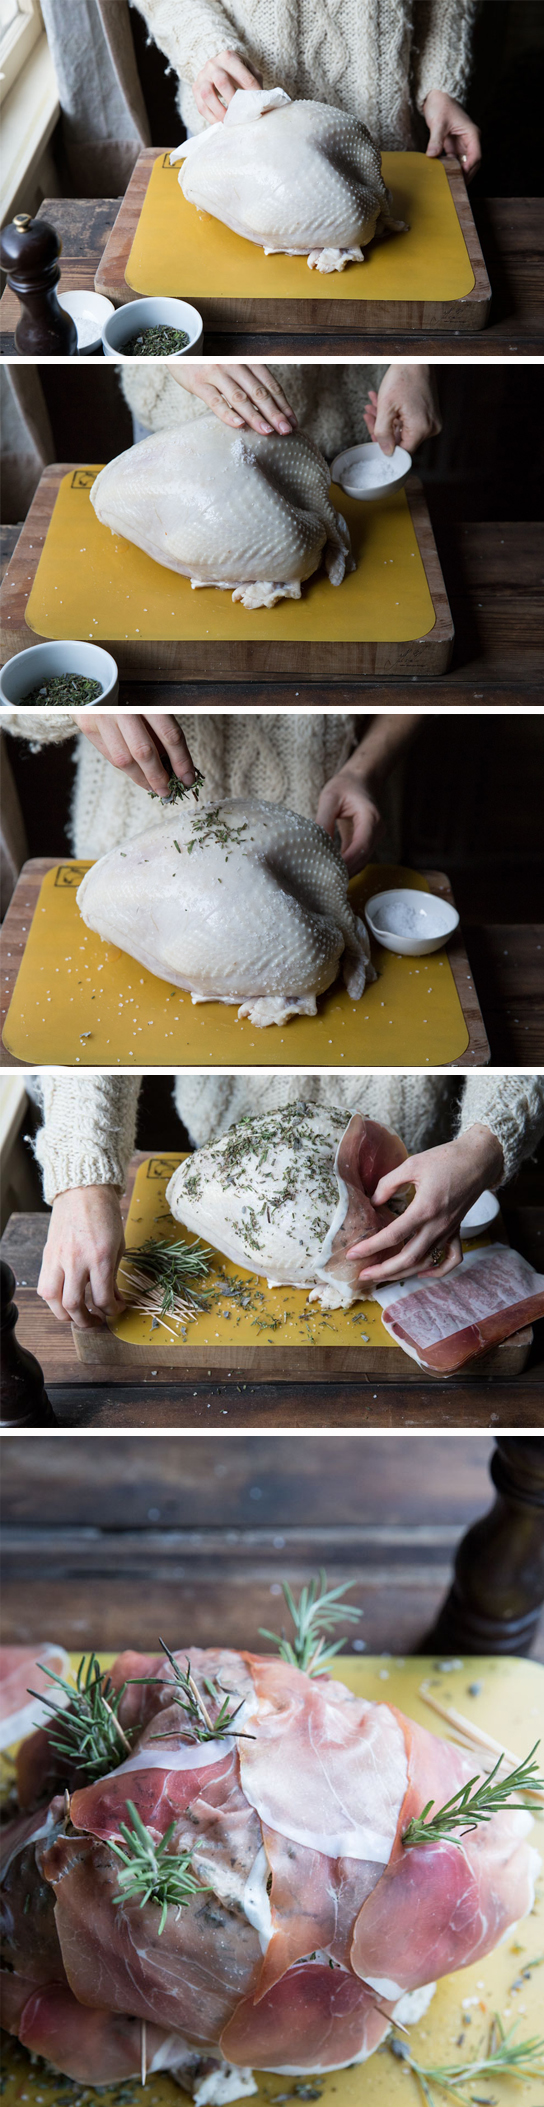 How to Prep and Roast a Turkey • theVintageMixer.com